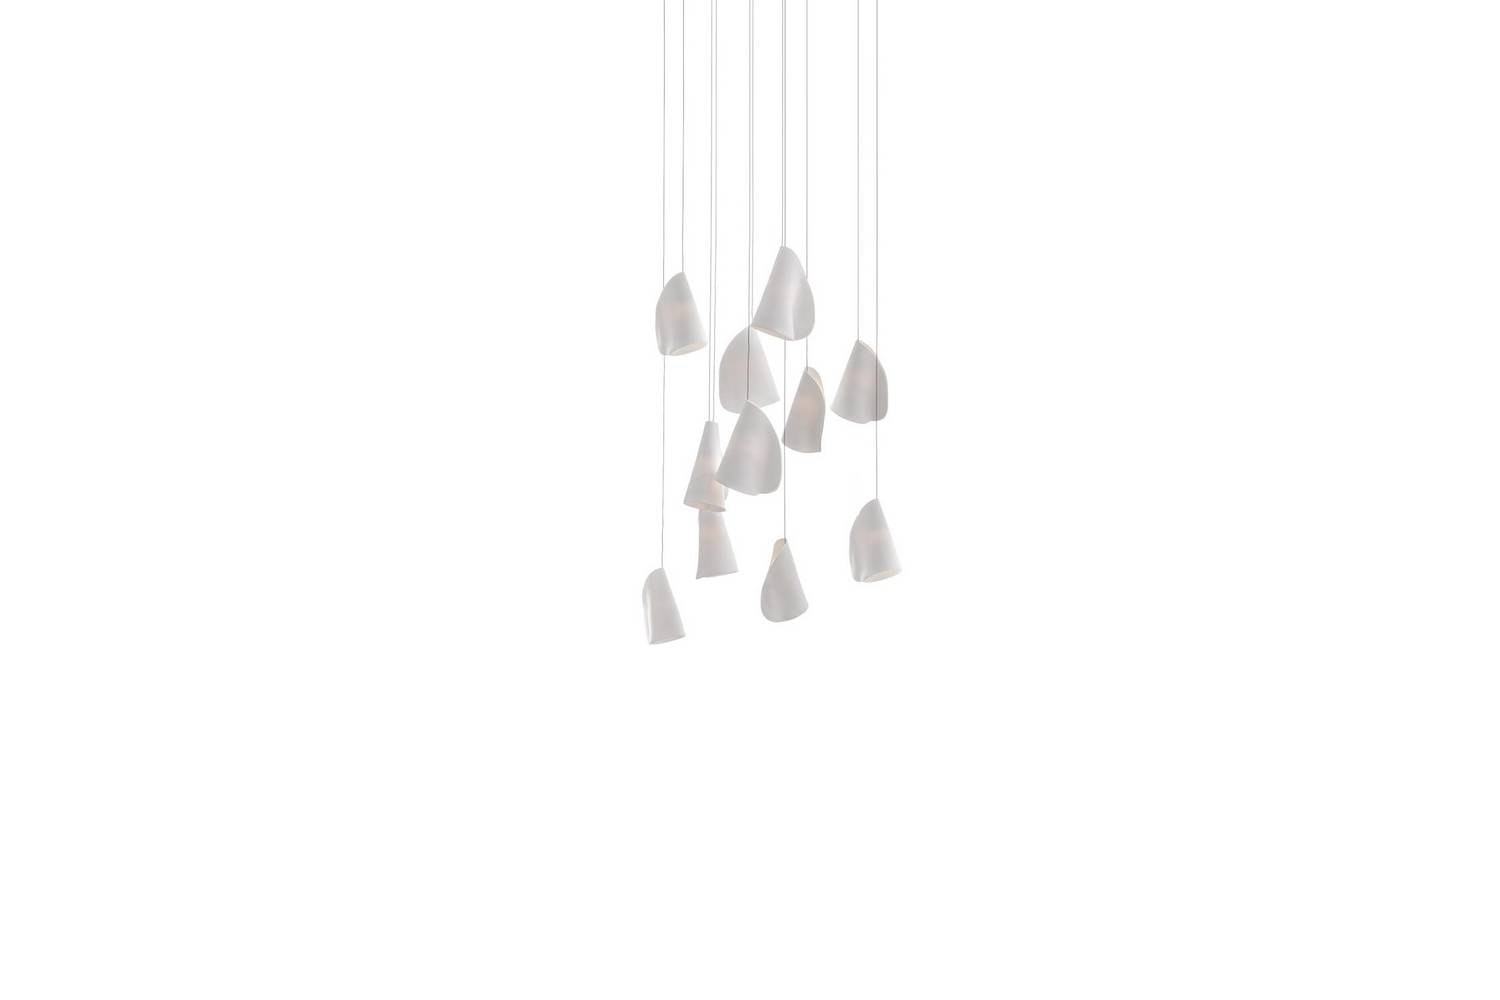 21.11 Standard Suspension Lamp by Omer Arbel for Bocci